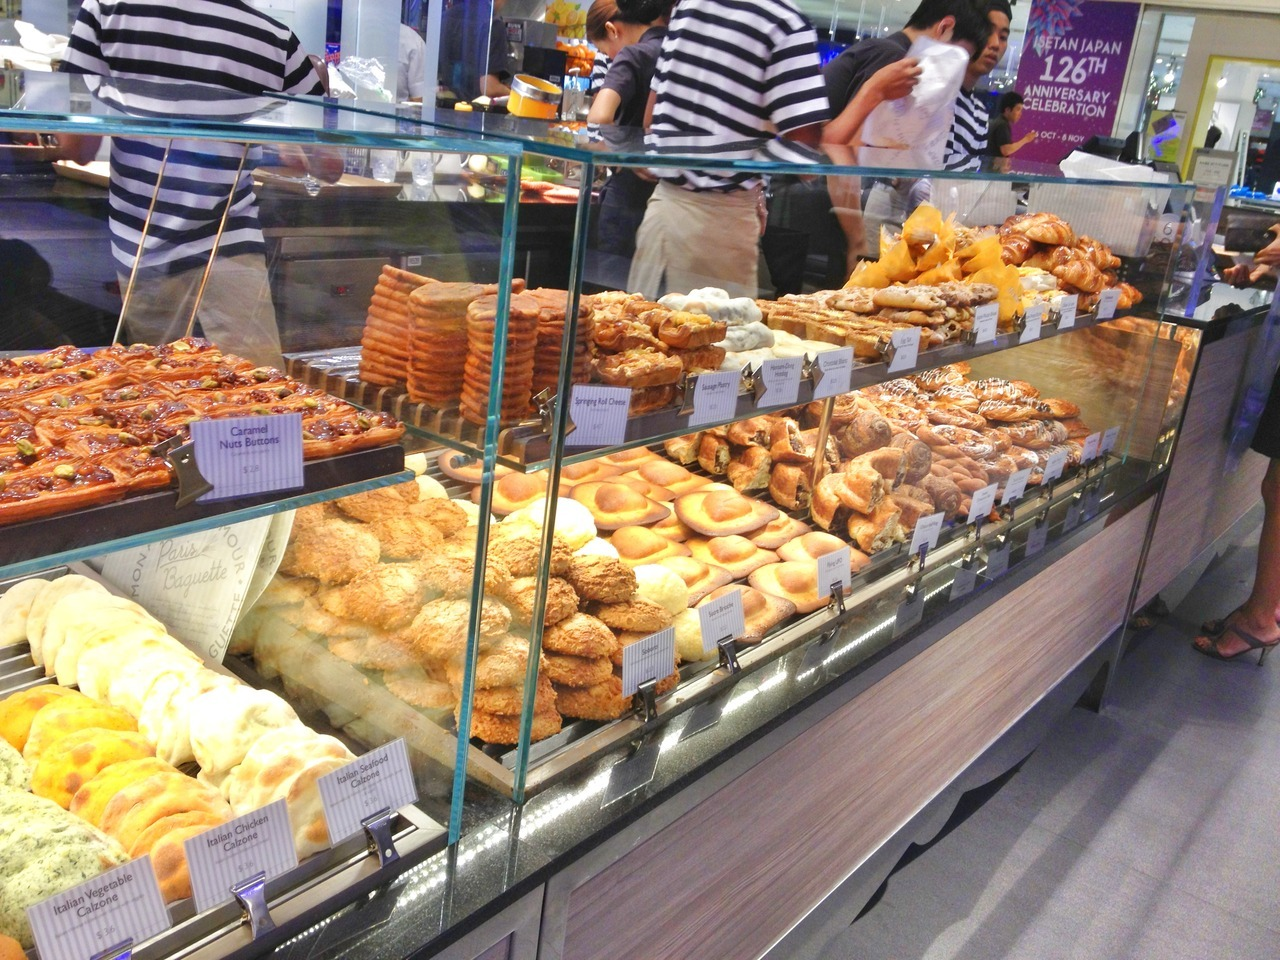 Pretty, delicious bread and pastries from South Korea's international chain of café-bakeries, Paris Baguette. Opened in August this year, their Wisma Atria outlet is its first and only in Singapore. They also have outlets in Korea, China, and the U.S. Don't be fooled by its name though. As it suggests otherwise, they're not really a French café-bakery per se. Their food caters towards Korean tastes, with breads that are rich, soft, and have delicate flavours. Side-note: Only a non-parisan café would use the word 'Paris' in its name, something like how Asian food stores all over the world sell 'Singapore noodles', which in reality, you can't find in Singapore at all. In addition to bread, cakes, and pastries, they also have set brunch menu items, sandwiches, café drinks and tea. Items are expensive on the price scale, but may all be worth if you're feeling a bit peckish for some delicious bread!